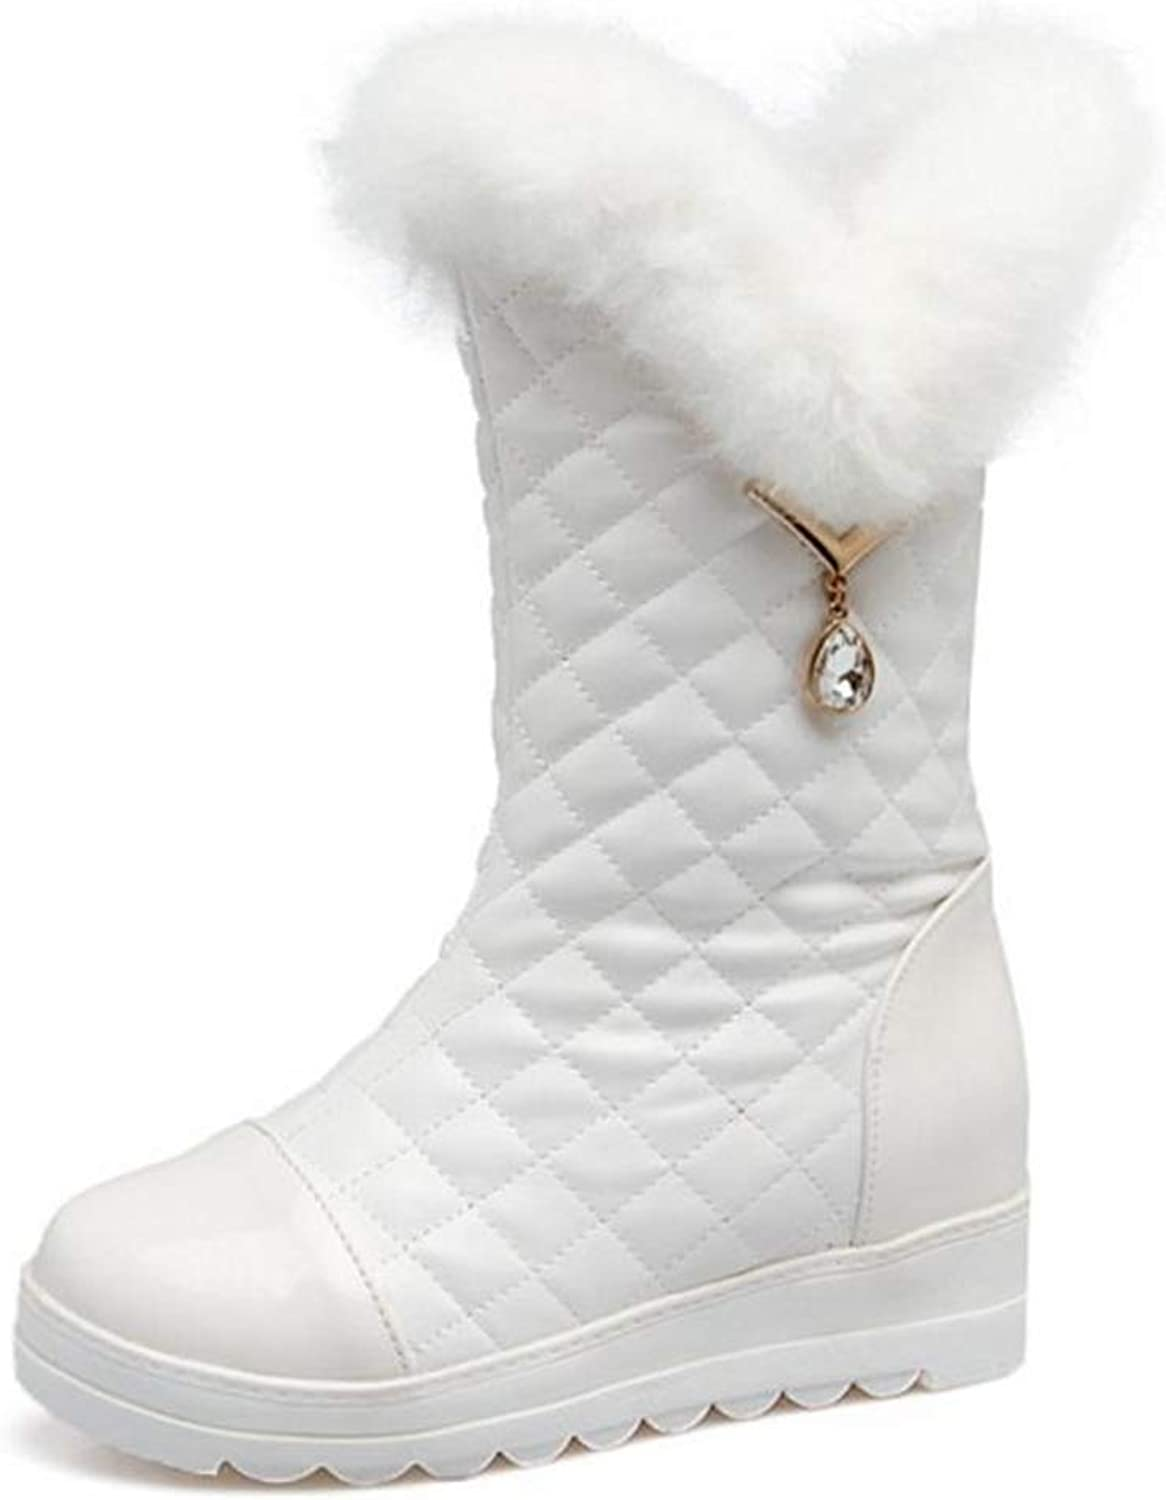 Webb Perkin Women Winter shoes Thick Fur Plush Inside Mid Calf Boots Thick Plaform Wedges Boots Fashion Snow Boots for Women